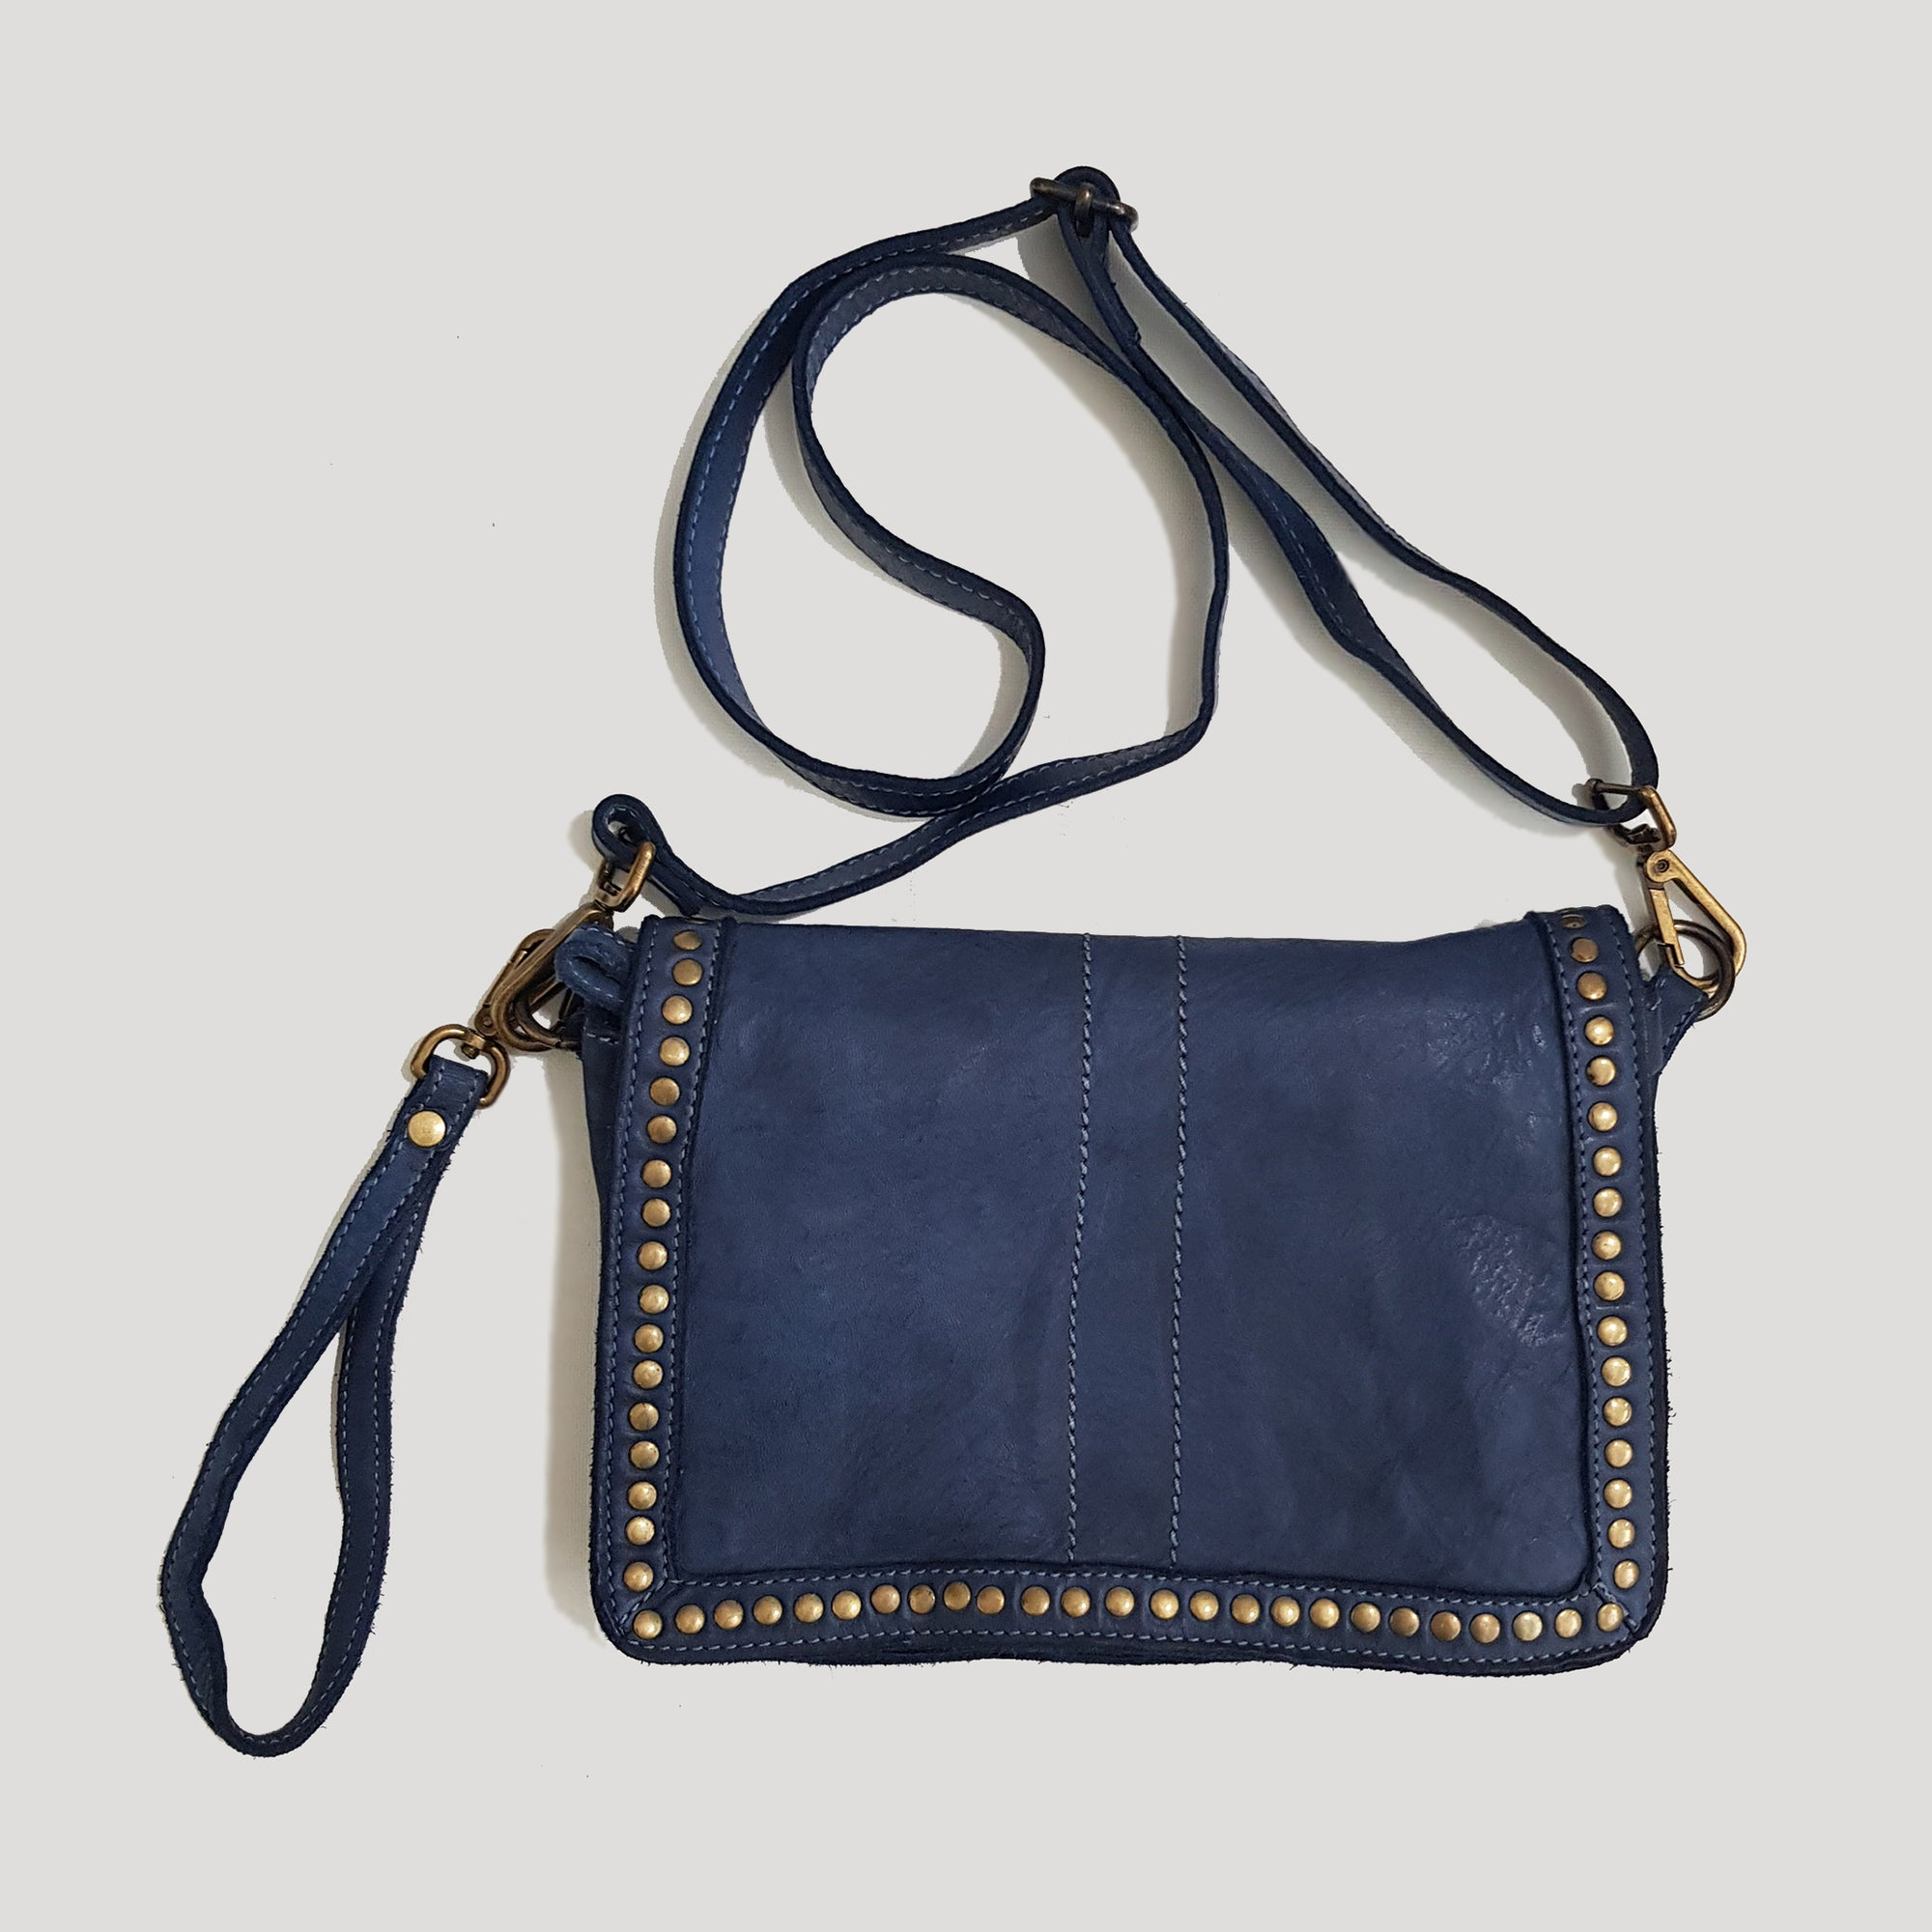 Midnight Blue Studded Washed Leather Crossbody - Small